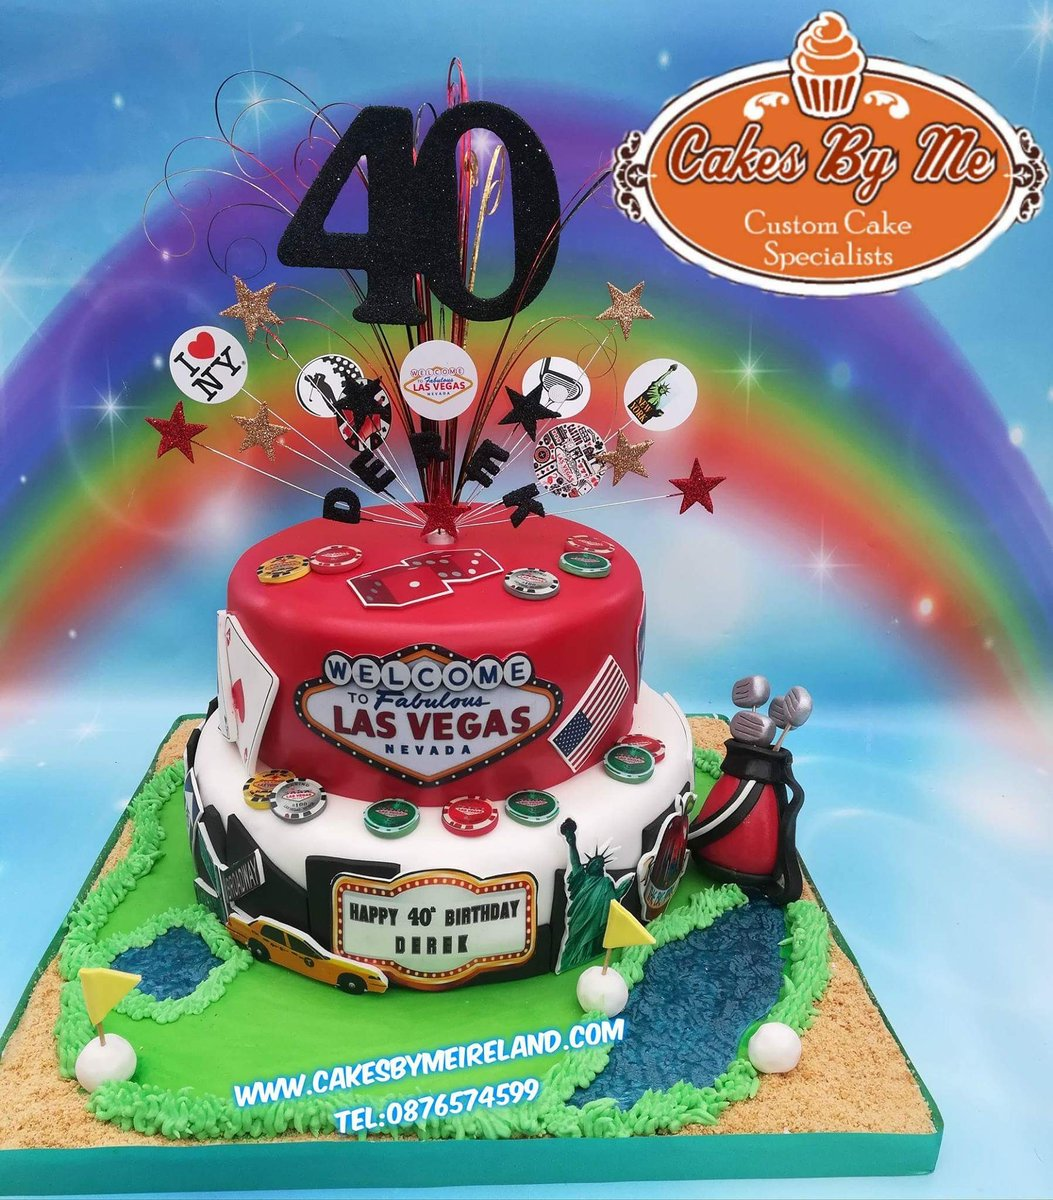 CAKES BY ME On Twitter Derek Celebrated His 40th Birthday Over The